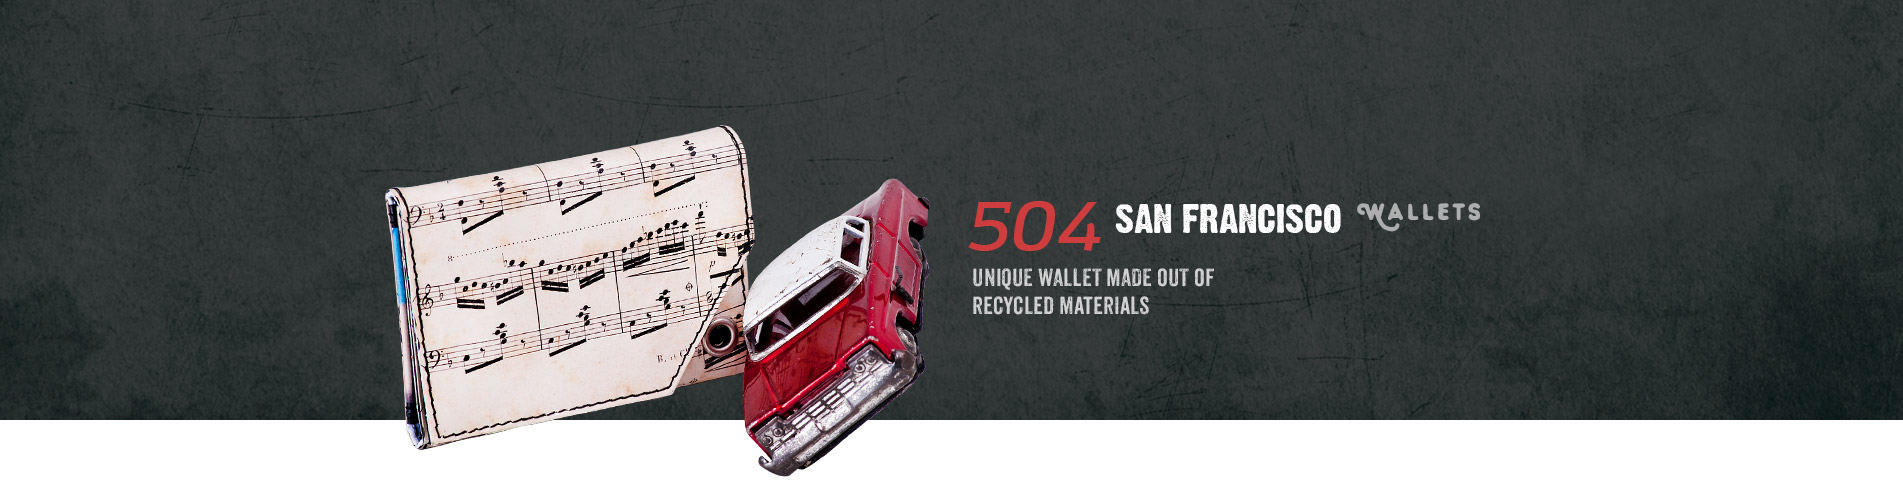 504 San Francisco Wallets